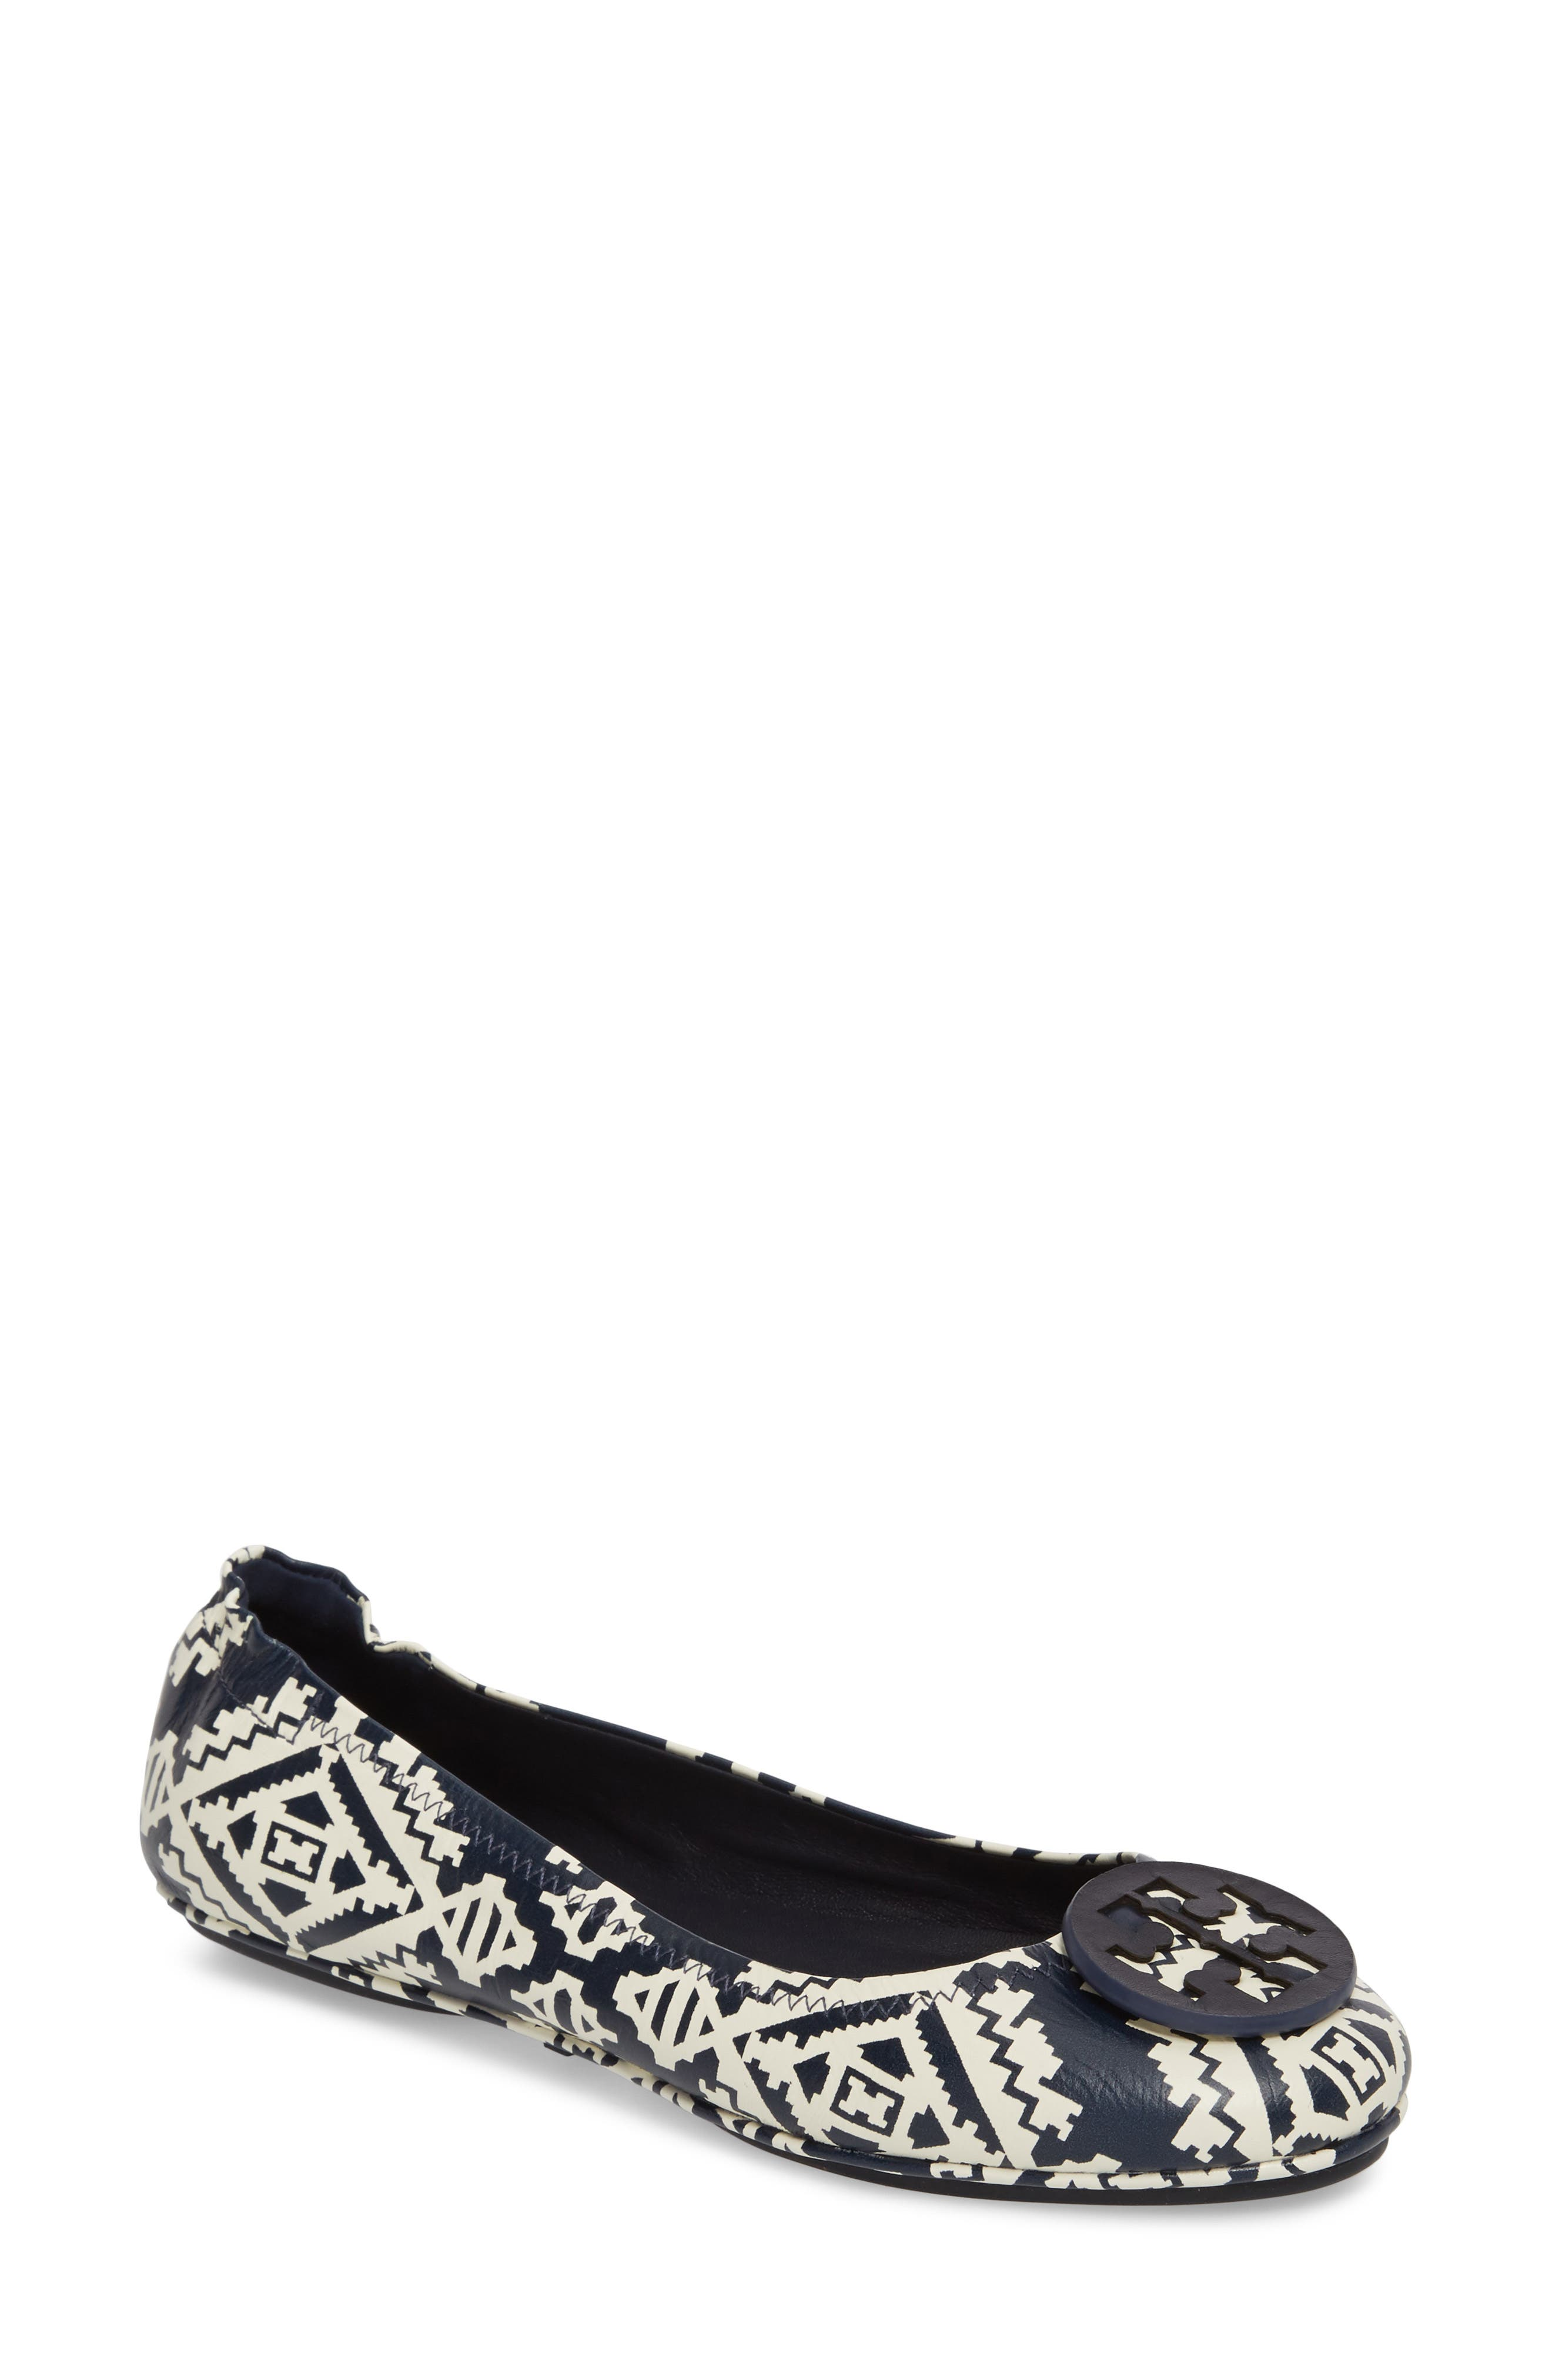 'Minnie' Travel Ballet Flat,                             Main thumbnail 1, color,                             Tapestry Geo